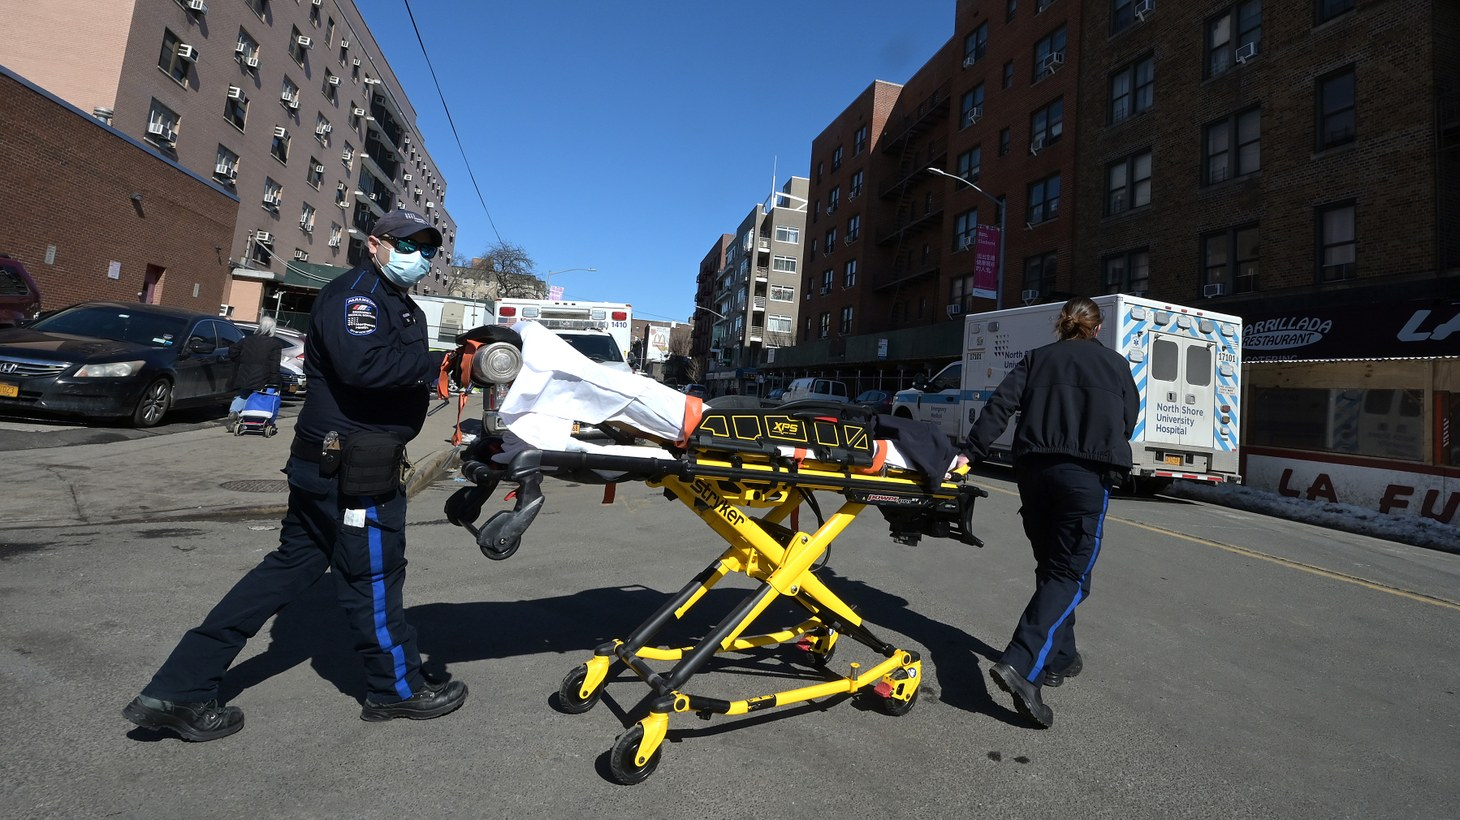 Two EMTs return to their ambulance with their stretcher after dropping off a patient at Elmhurst Hospital Center in the Queens borough of New York City, NY, February 21, 2021.